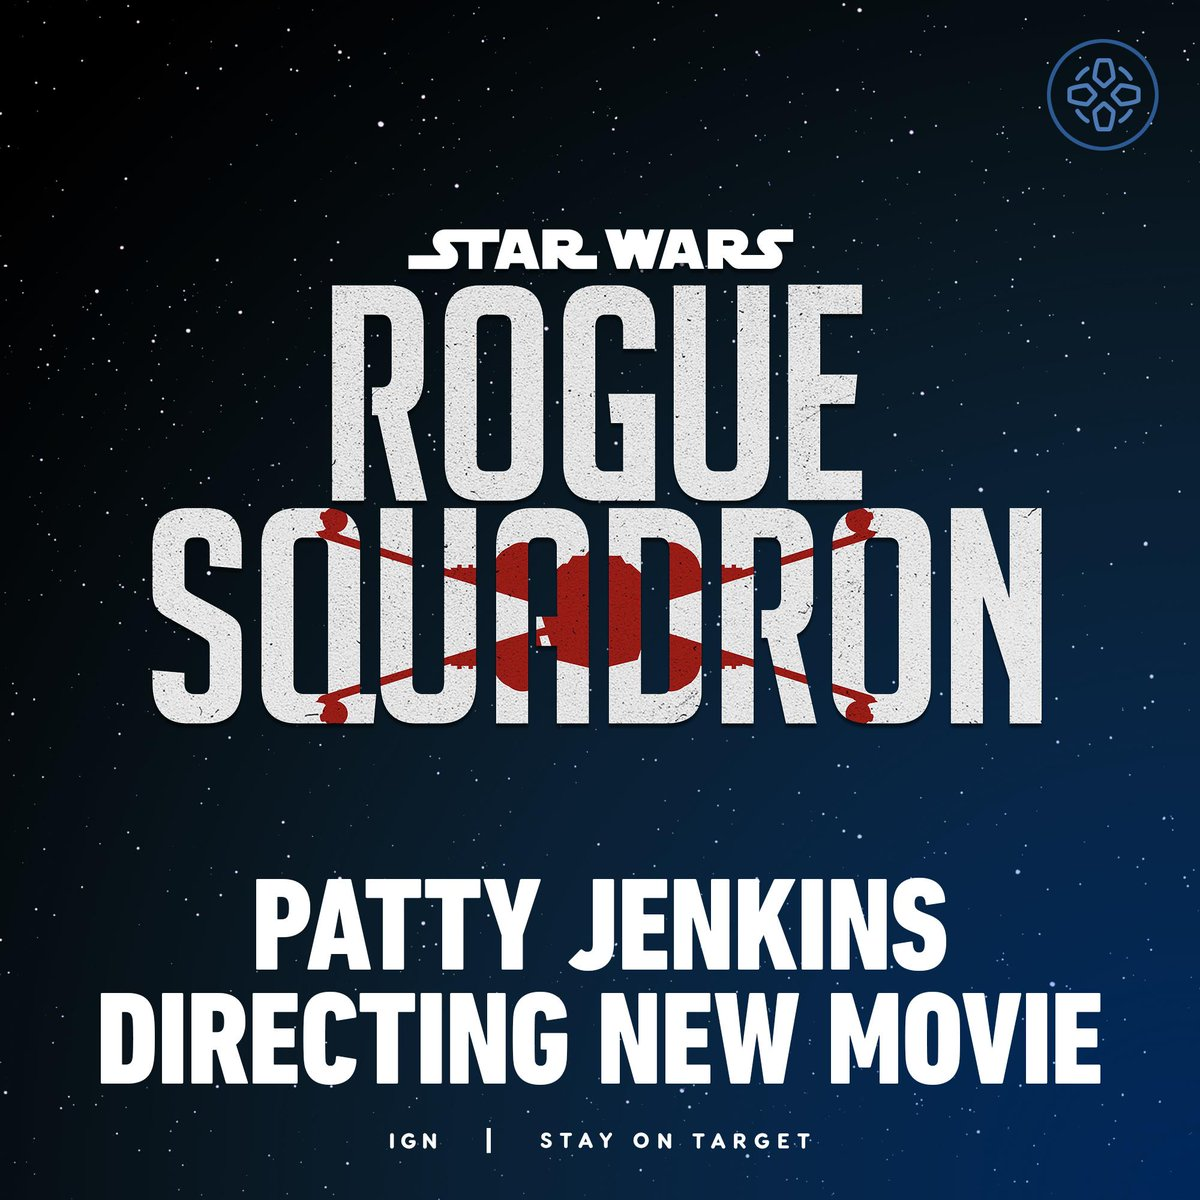 Ign On Twitter Rogue Leader Standing By Disney Announced A Rogue Squadron Star Wars Film Is Officially Coming Christmas 2023 Directed By Wonder Woman S Patty Jenkins Https T Co Zfs6okmrl5 Https T Co Xlxxf01aex